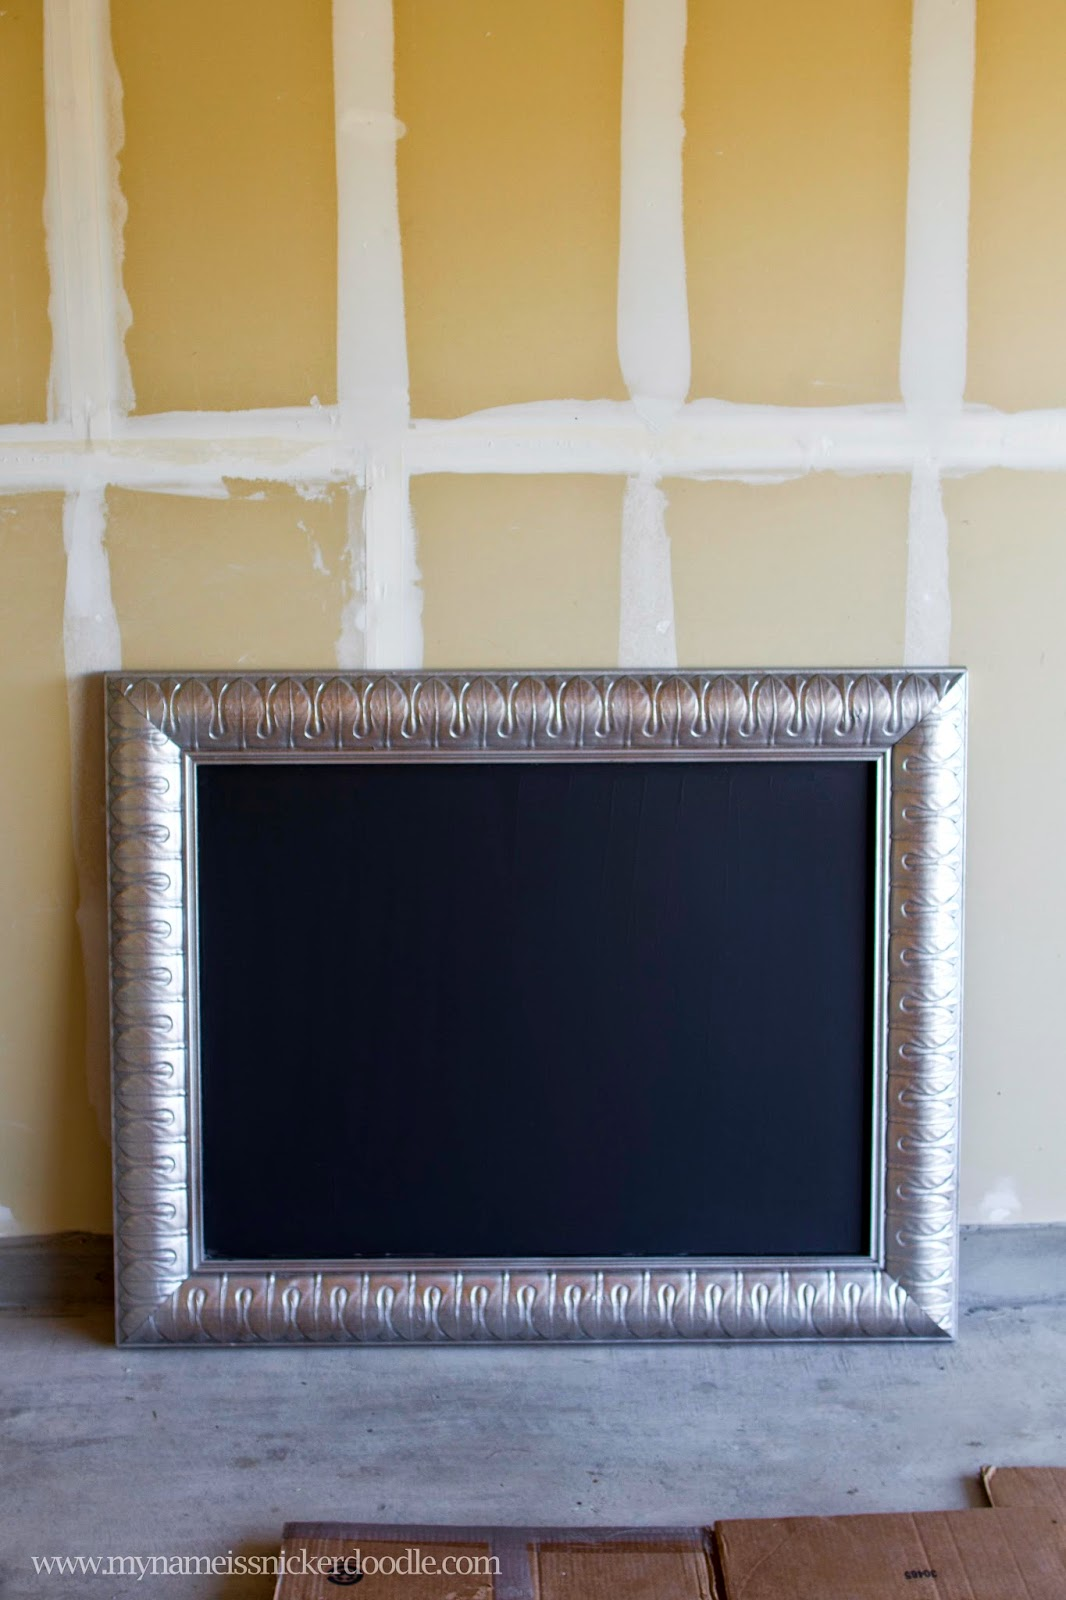 Here's how to turn an old painting into an adorable framed chalkboard!  | My Name Is Snickerdoodle #chalkboard